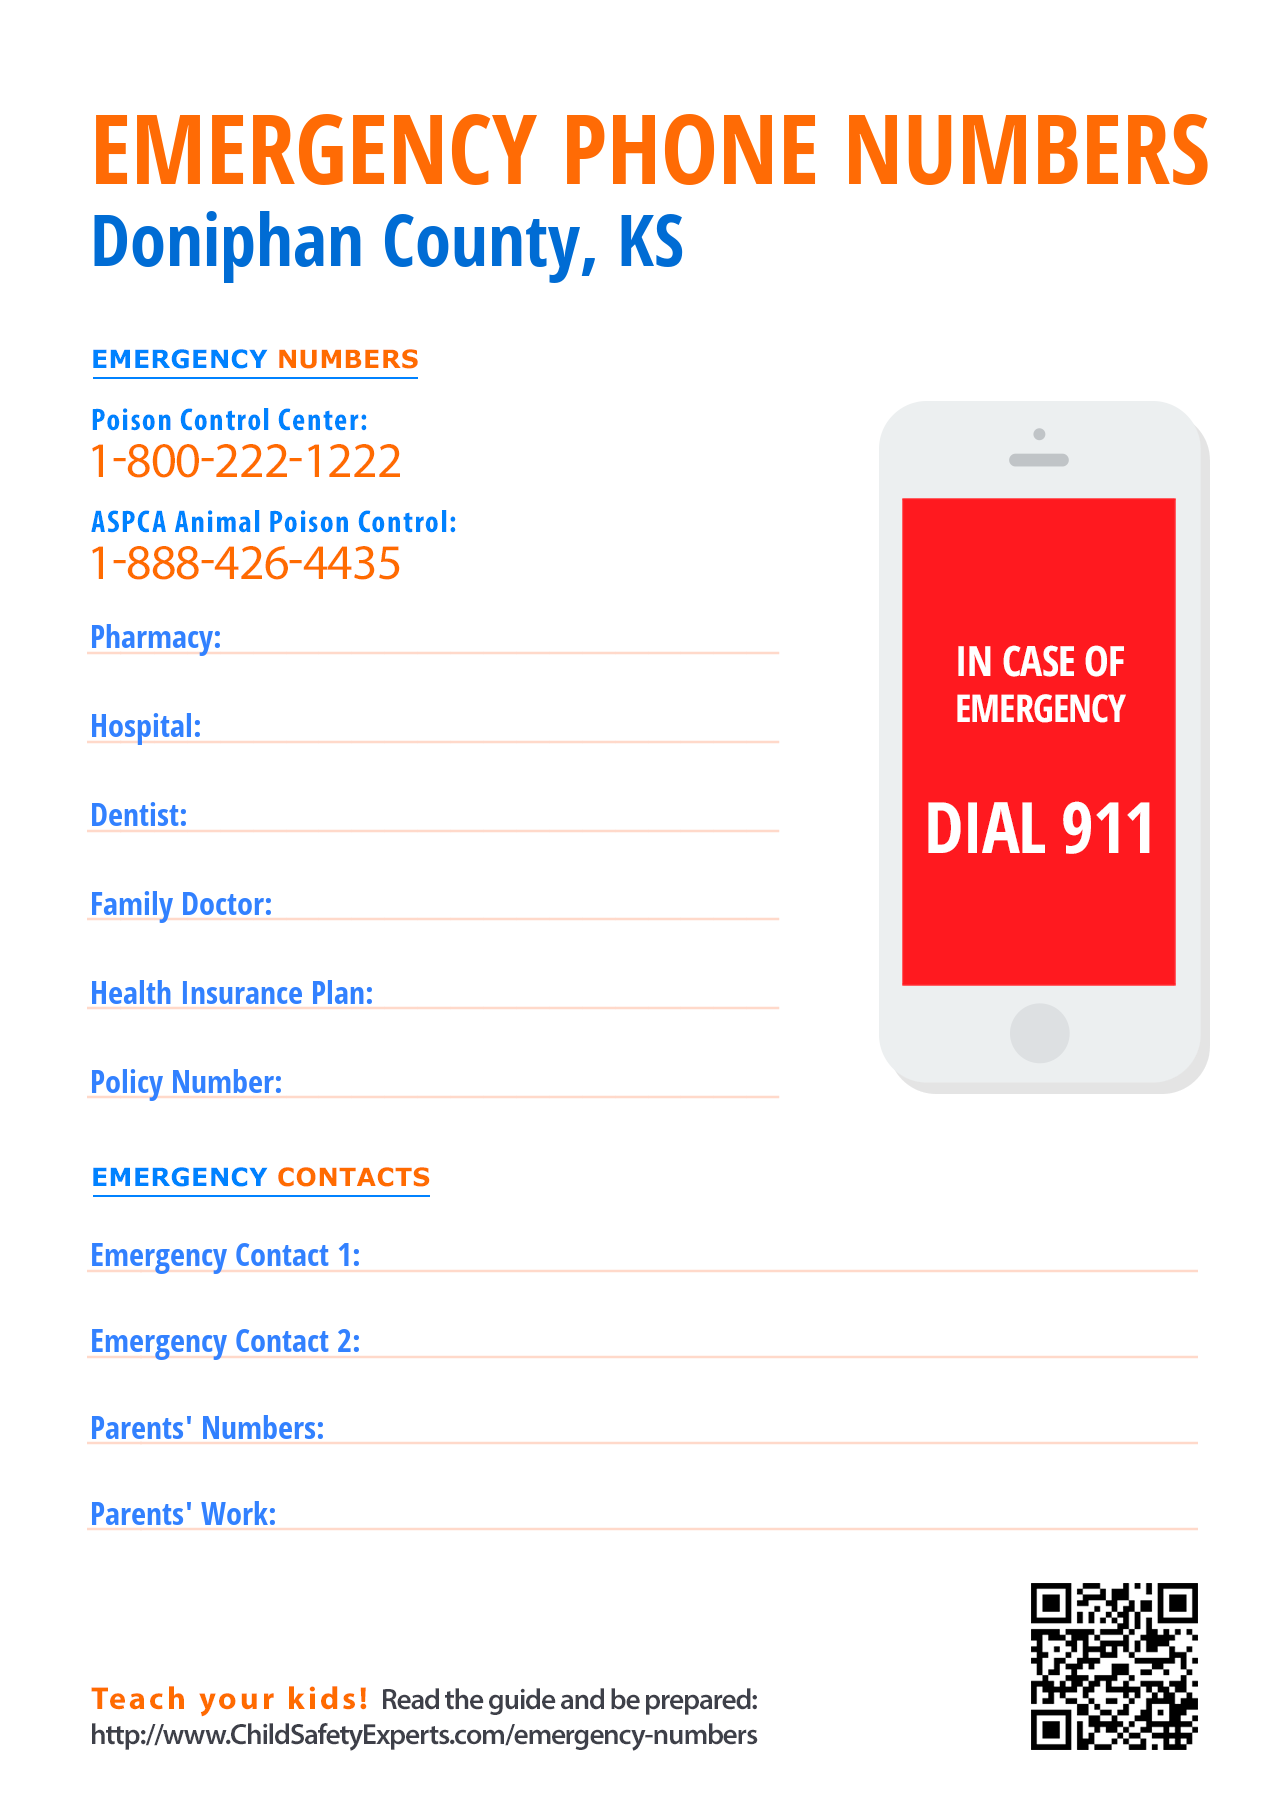 Important emergency phone numbers in Doniphan County, Kansas